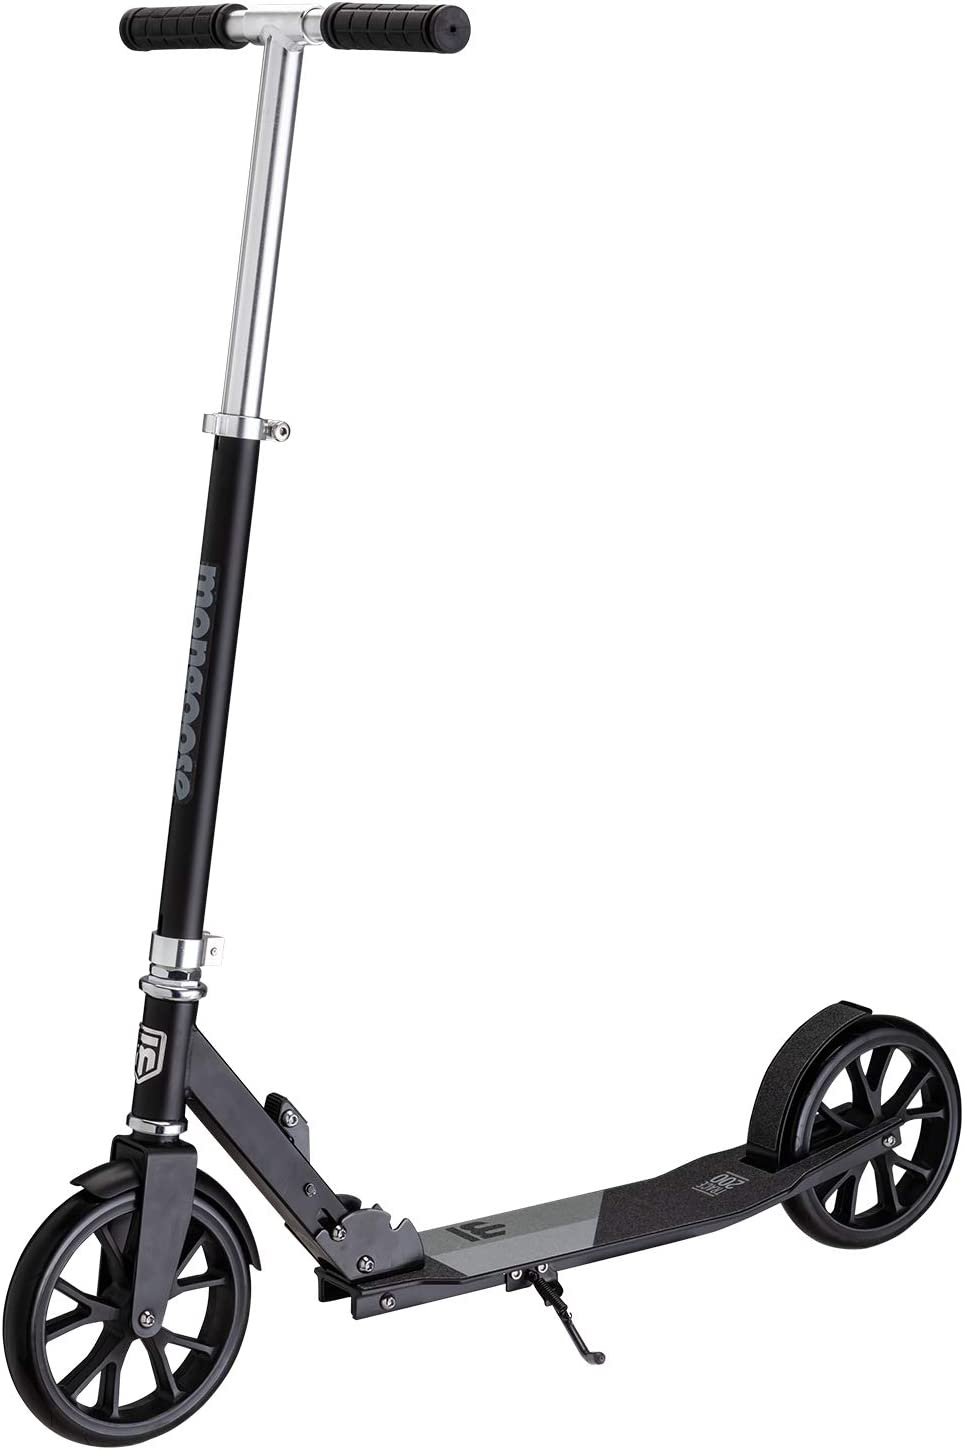 3 Adjustable Heights and 5 PU Flashing Wheels Kids Scooter Aluminum Alloy Scooter for Age of 4-9 Lightweight GOTRAX KX5 Kick Scooter Only 5.15lb